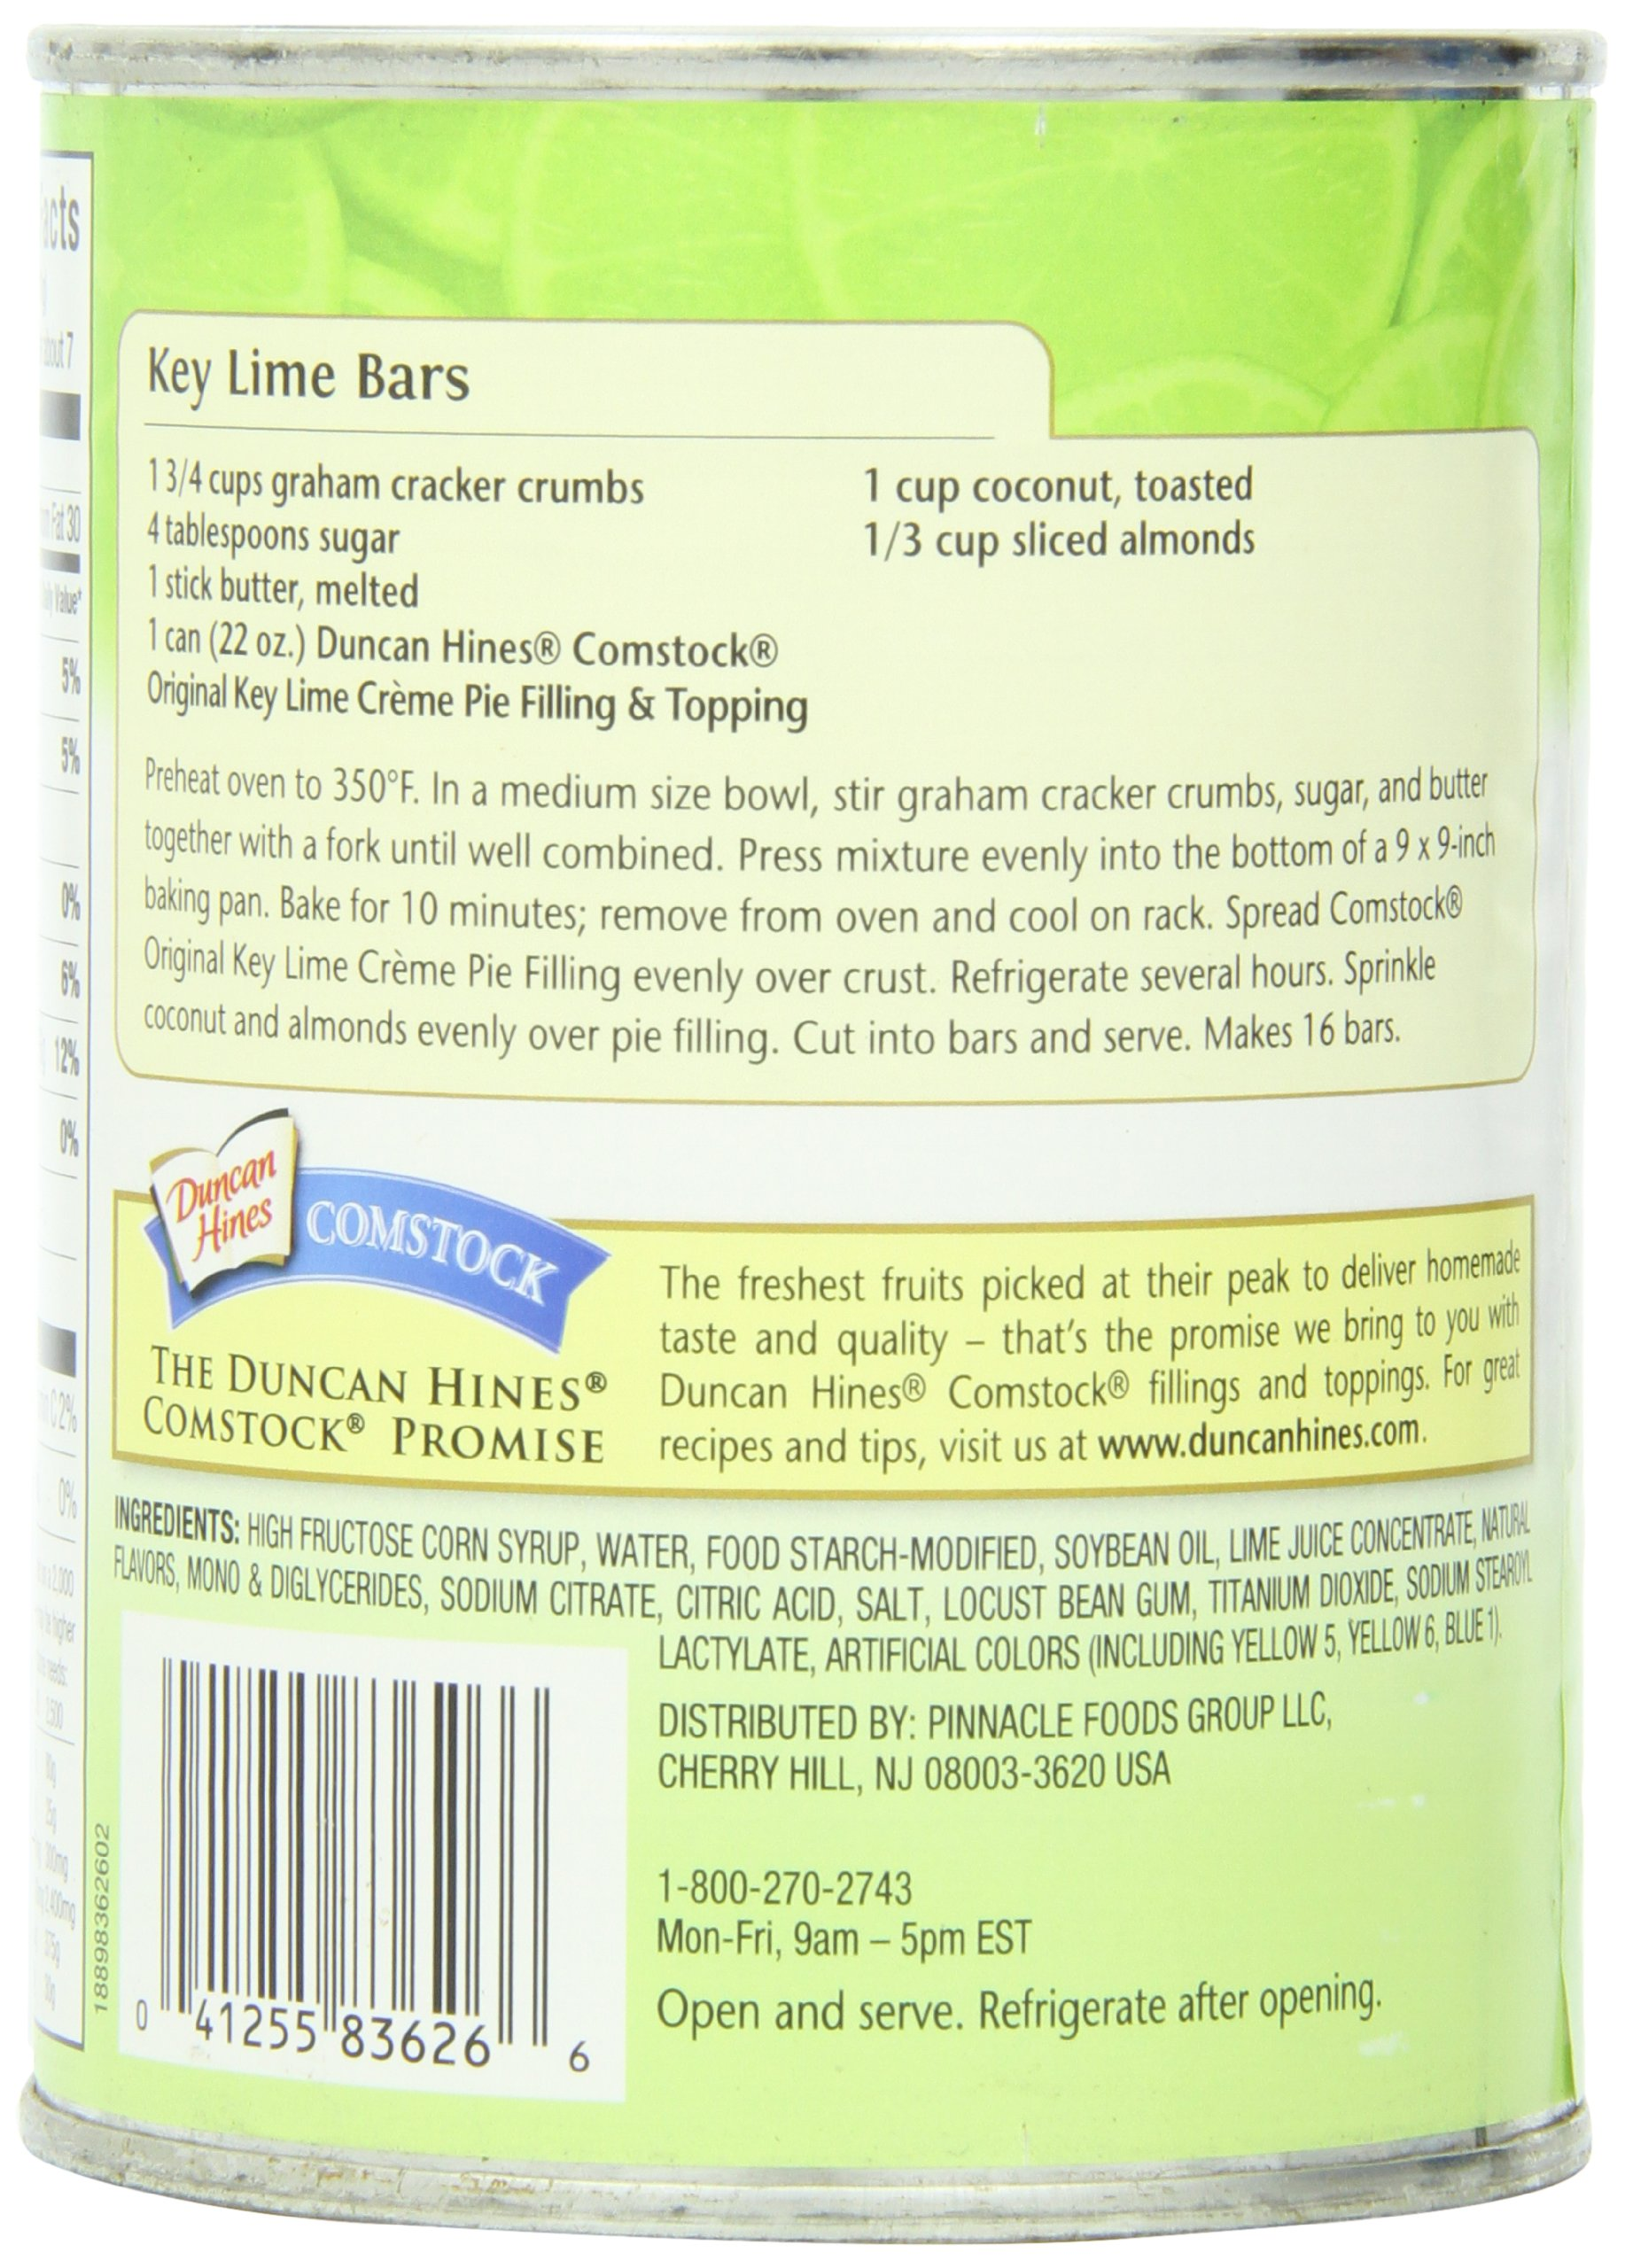 Comstock Original Pie Filling & Topping, Key Lime Creme, 22 Ounce (Pack of 8) by Comstock (Image #4)